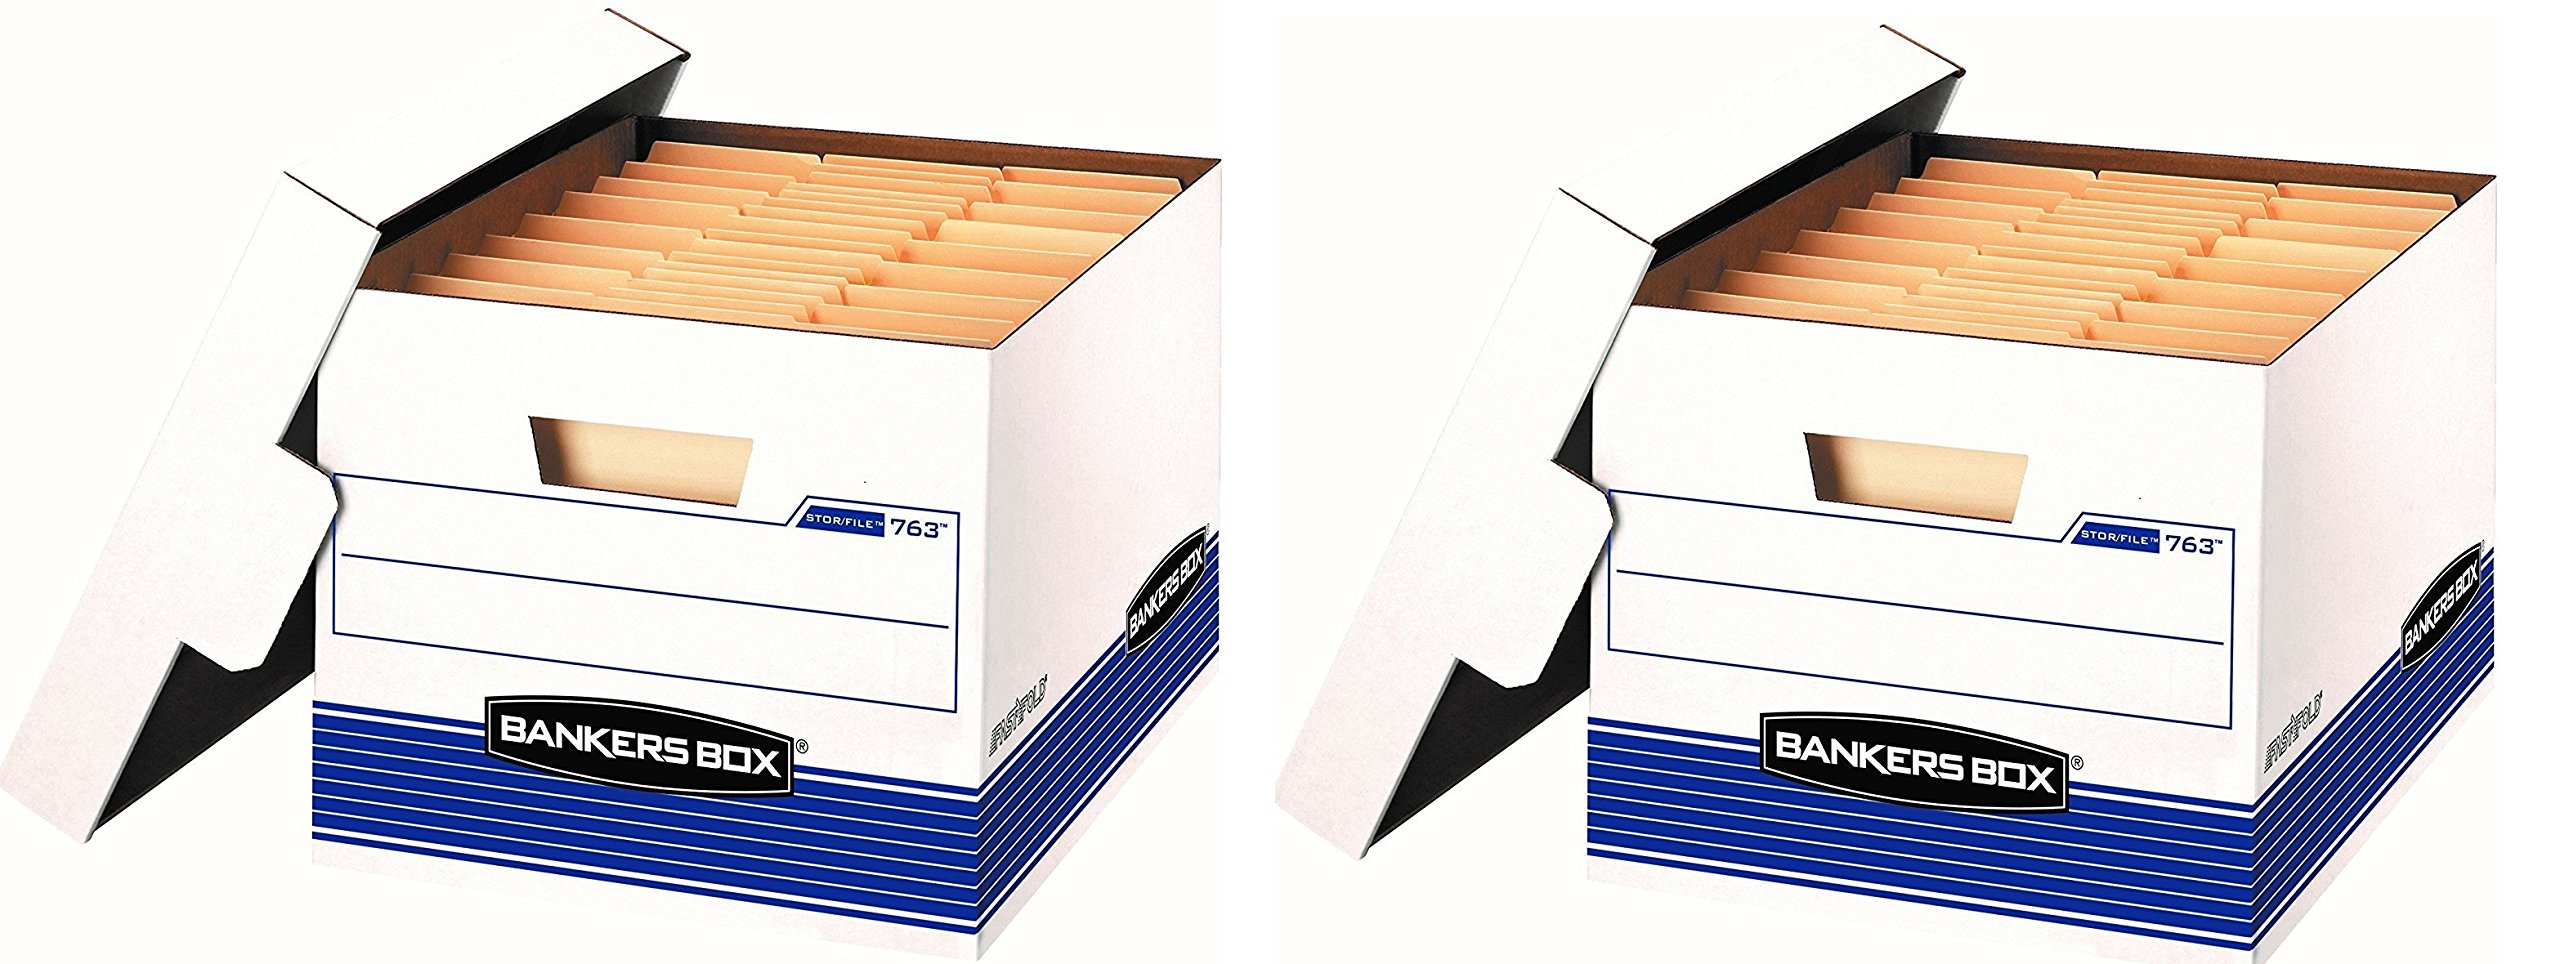 Bankers Box Stor/File Medium-Duty Storage Boxes with Lift-Off Lid, Letter/Legal, 20 Pack (0076315) (40 Boxes)